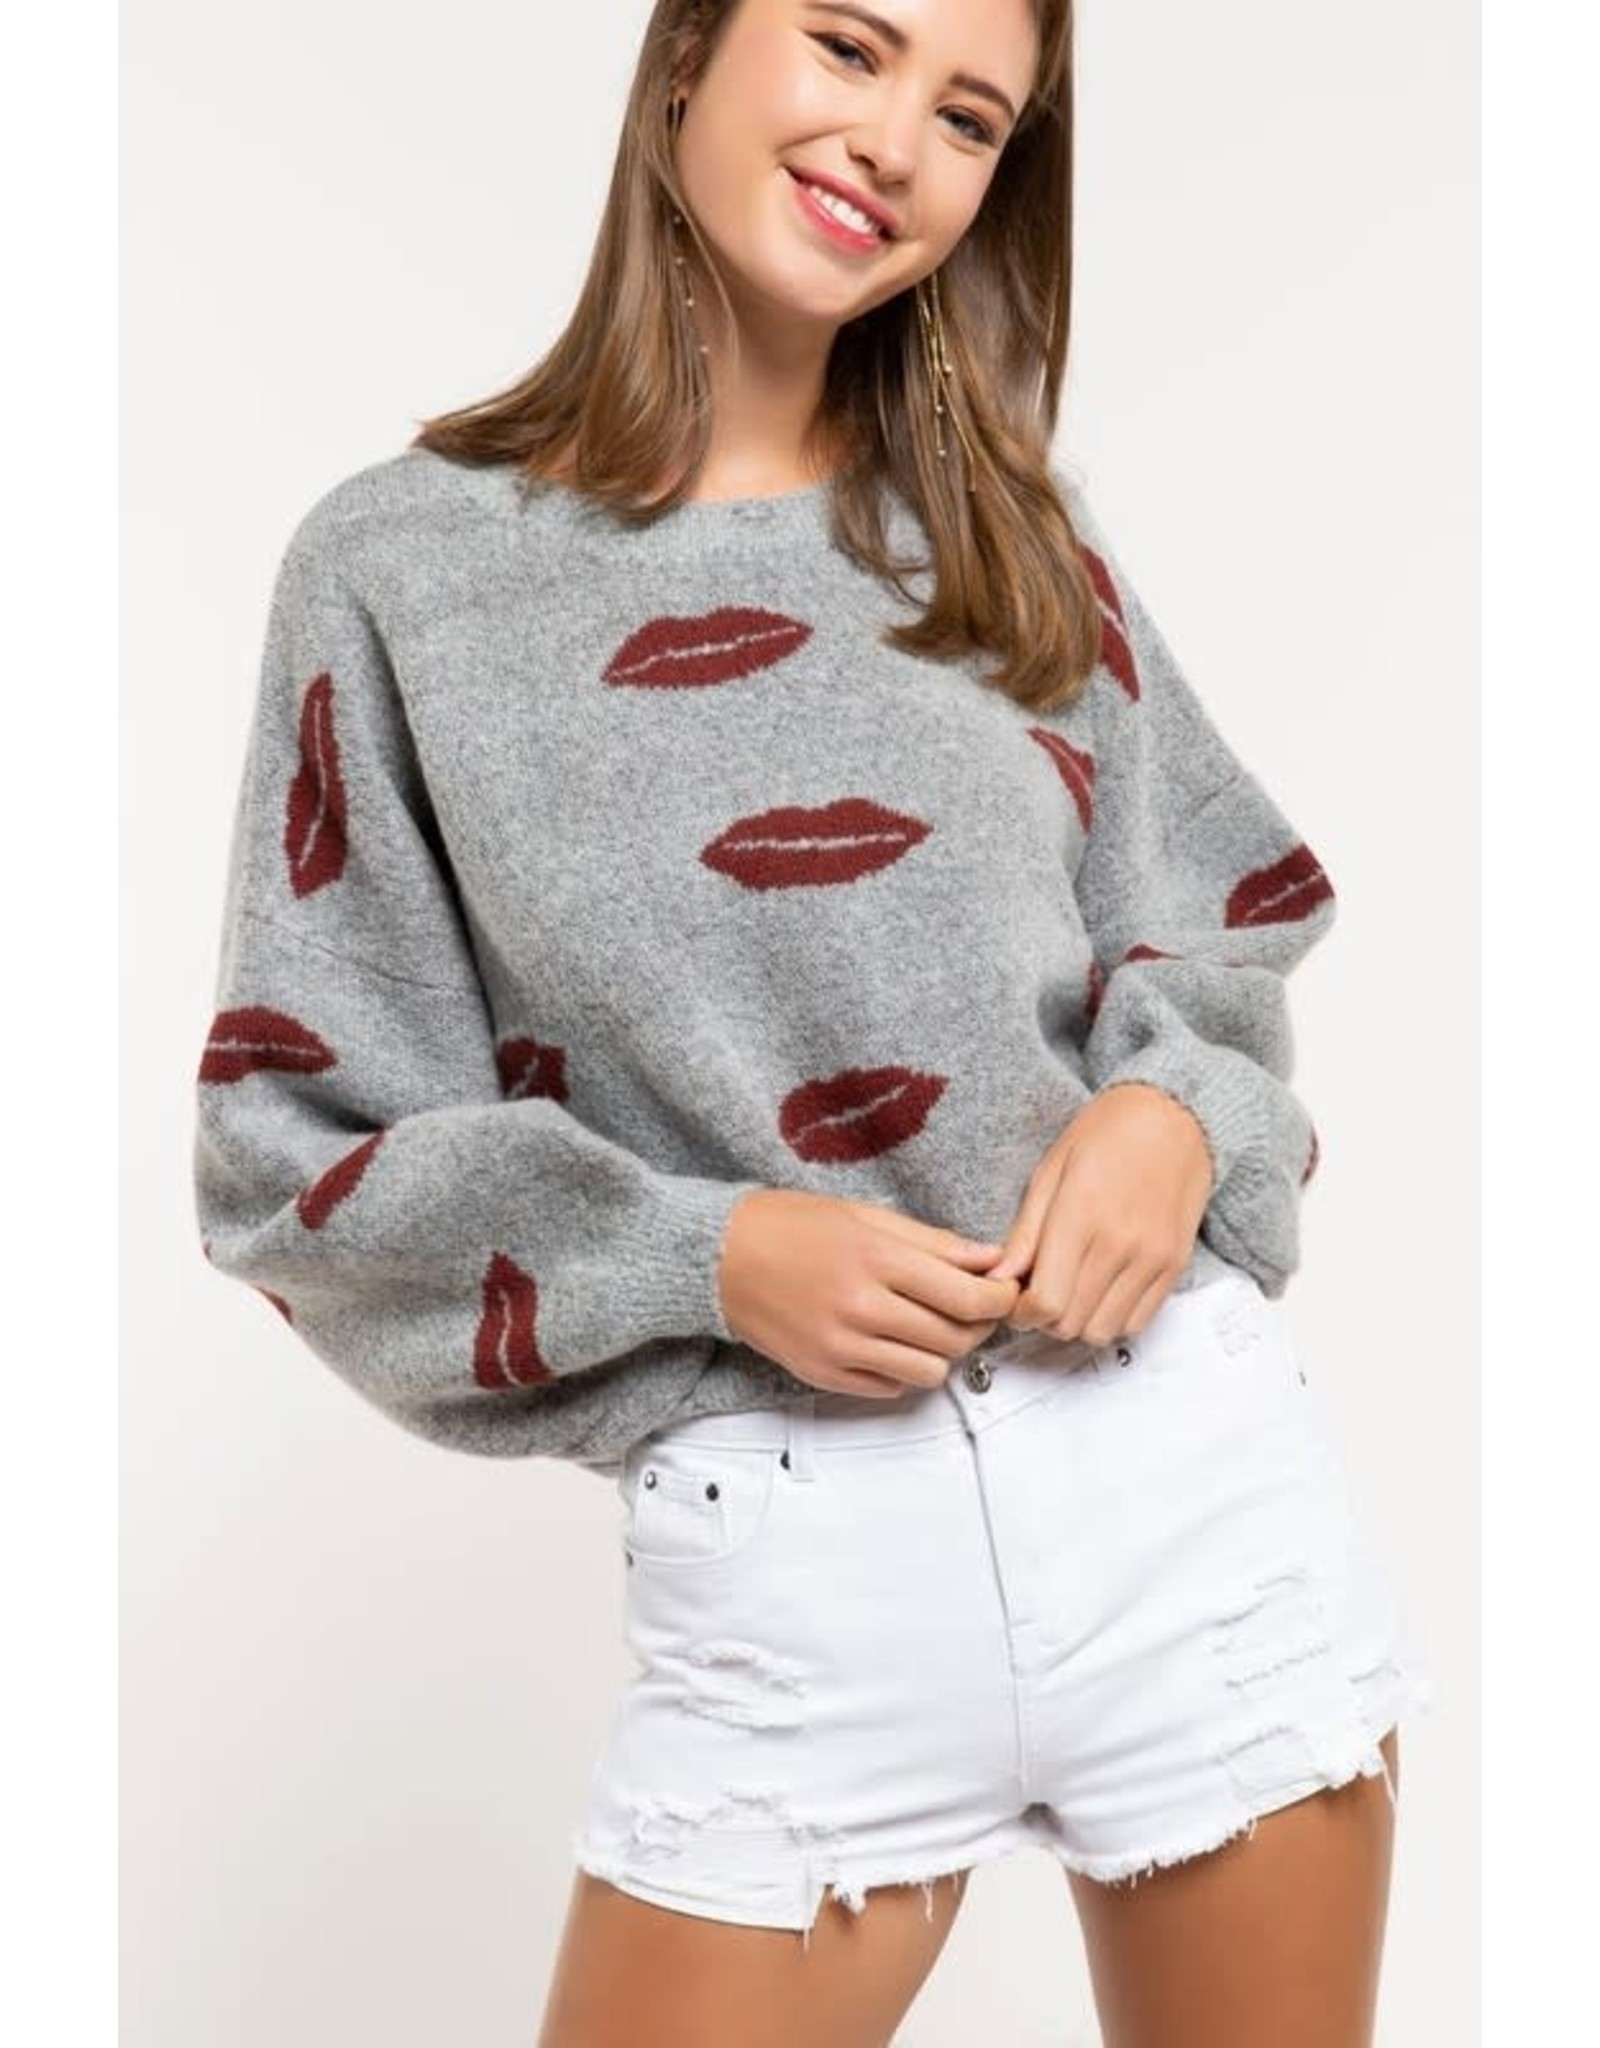 Blowing Kisses Sweater